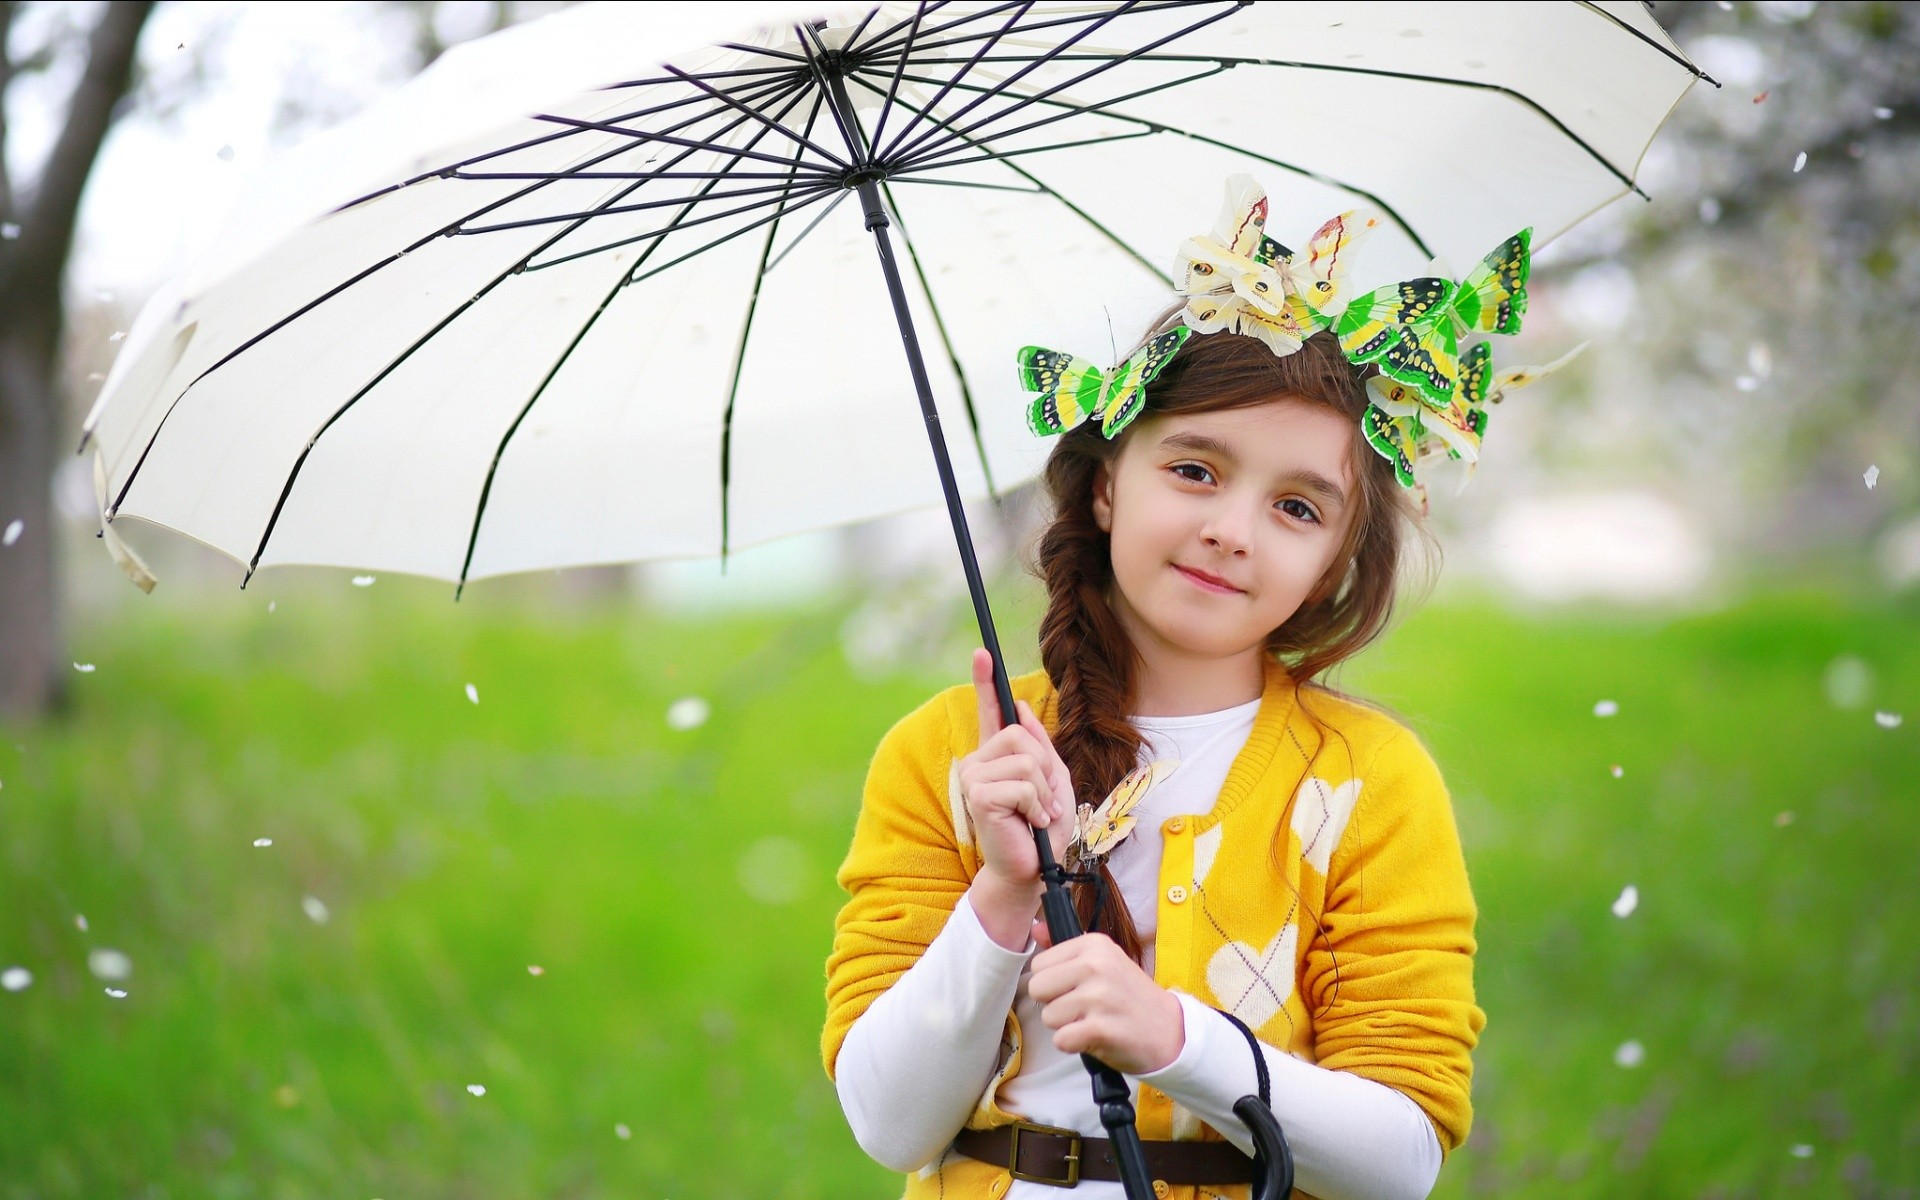 Find out: Cute Baby Girl with White Umbrella wallpaper on https://hdpicorner